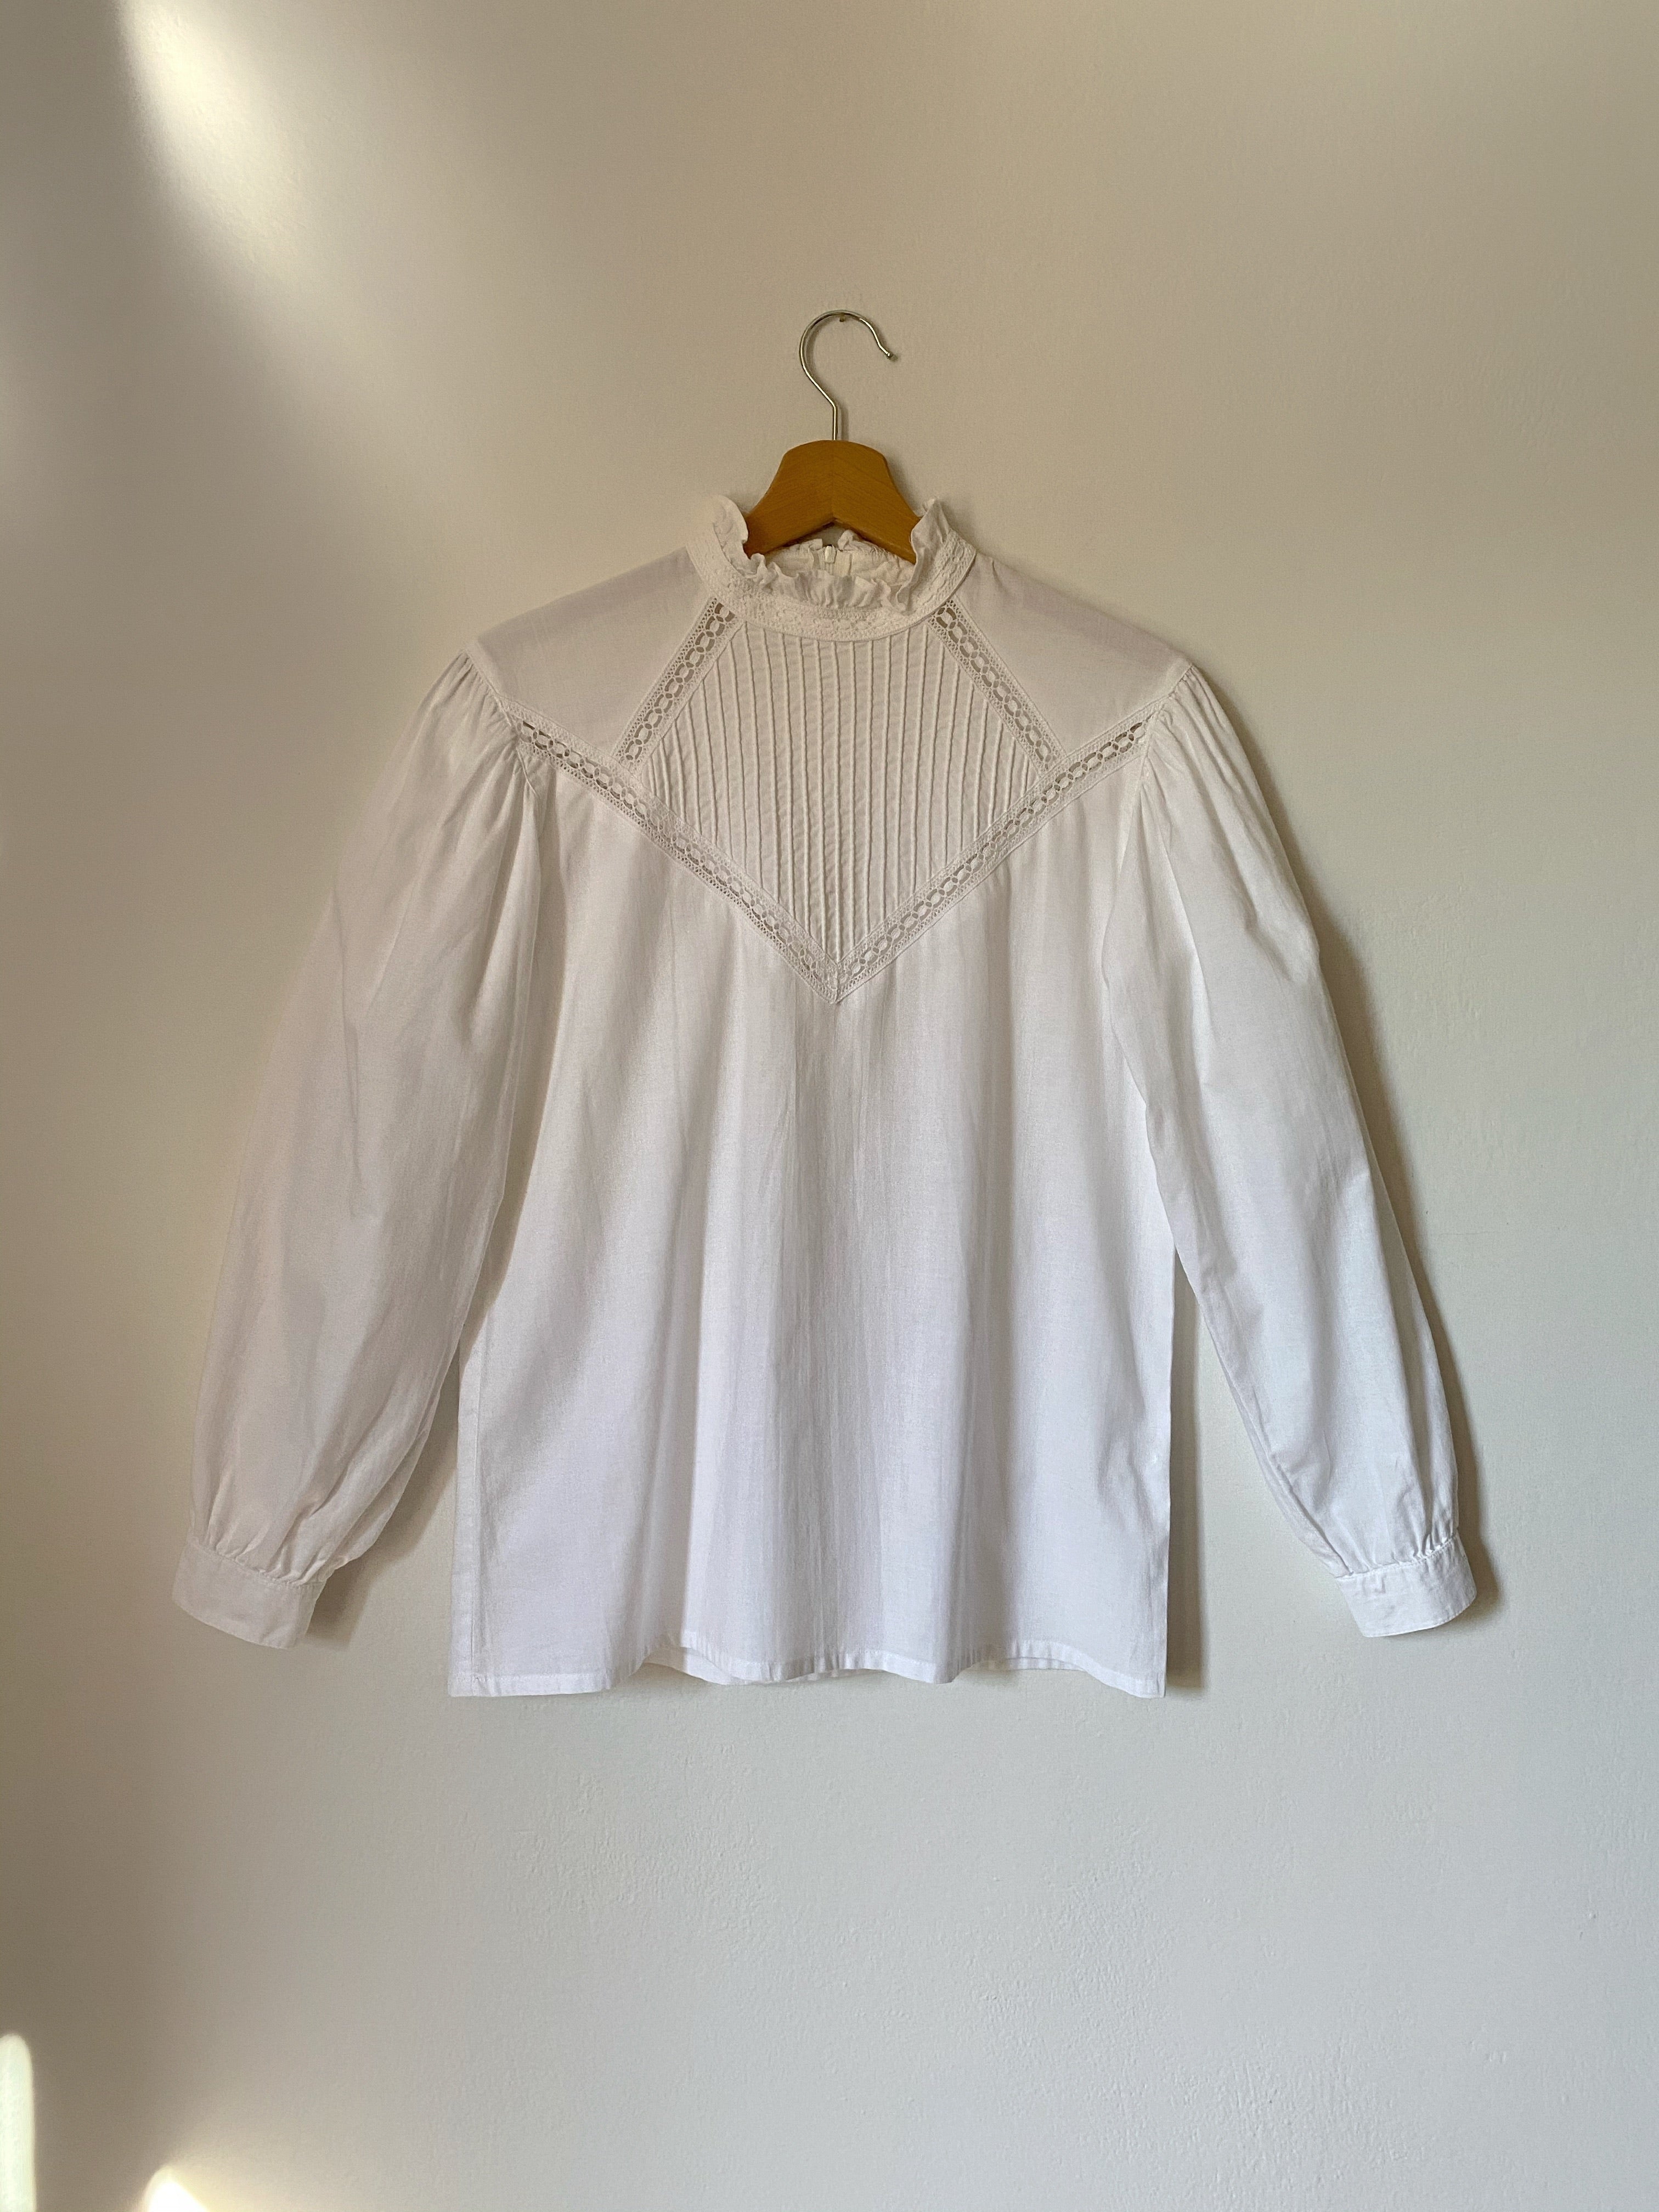 Vintage pure cotton high ruffled collar puff sleeve shirt